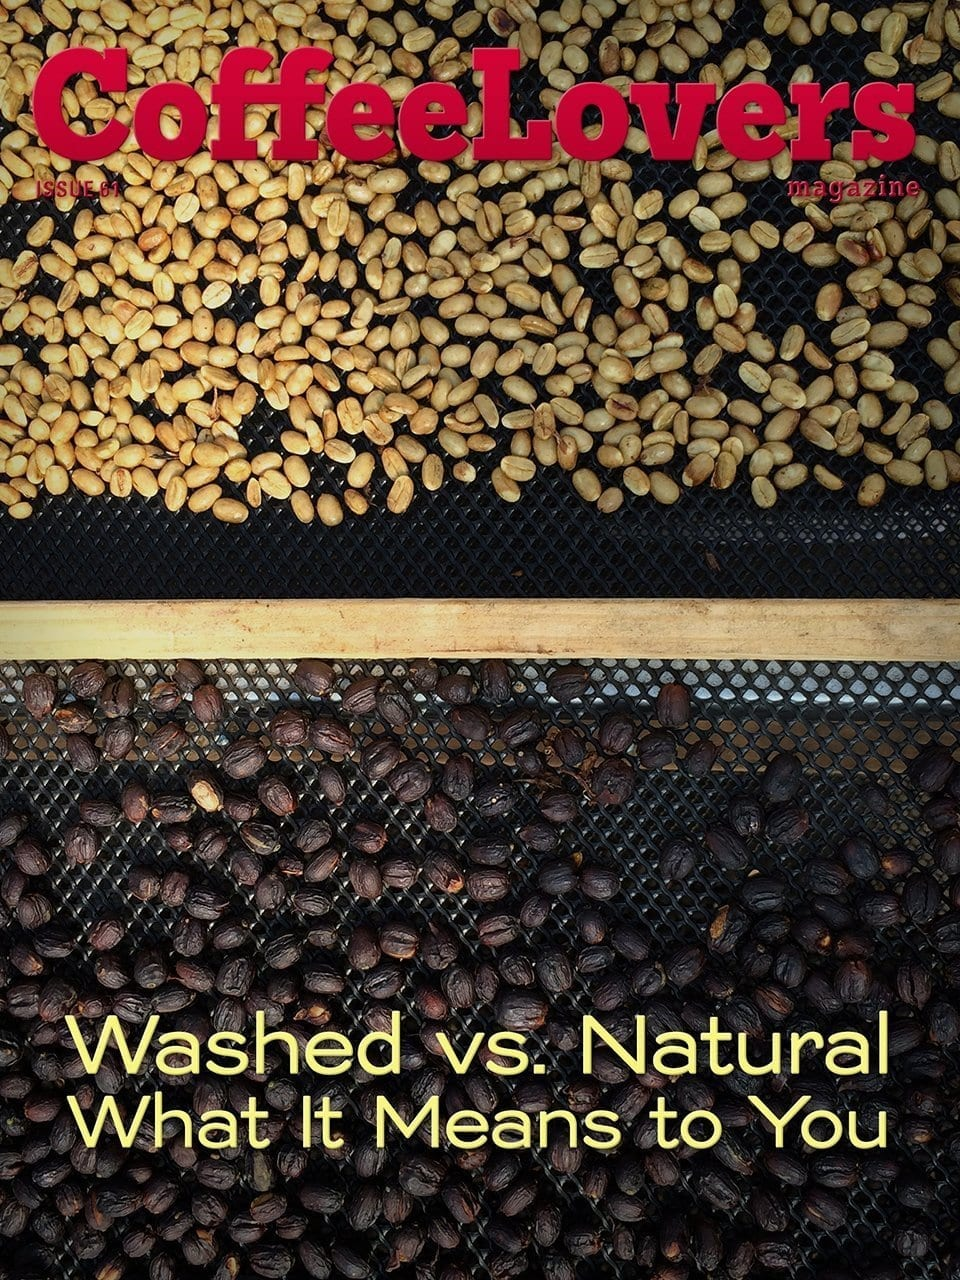 Washed or Natural - What it Means to You - Issue 61 Coffee Lovers Magazine